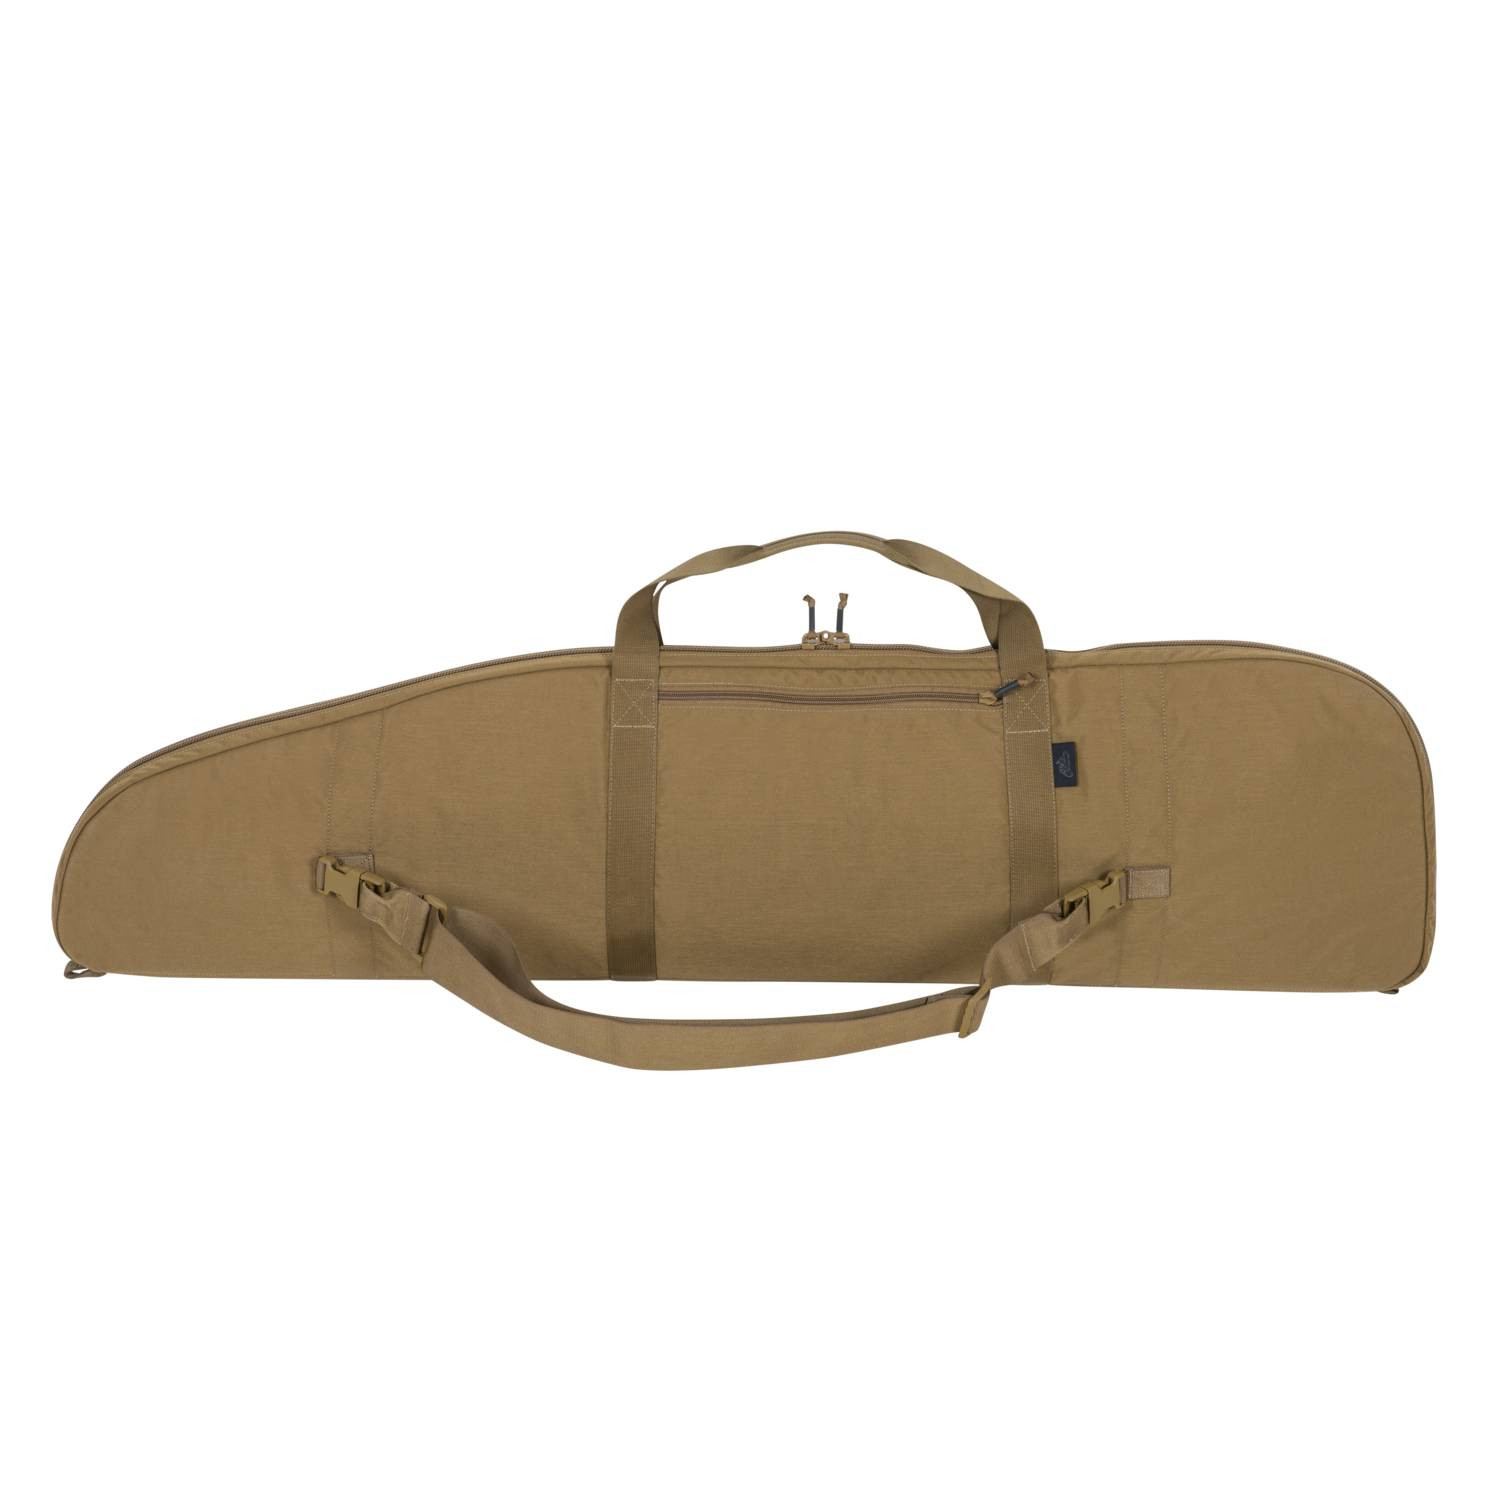 Pokrowiec Basic Rifle Case Detal 3